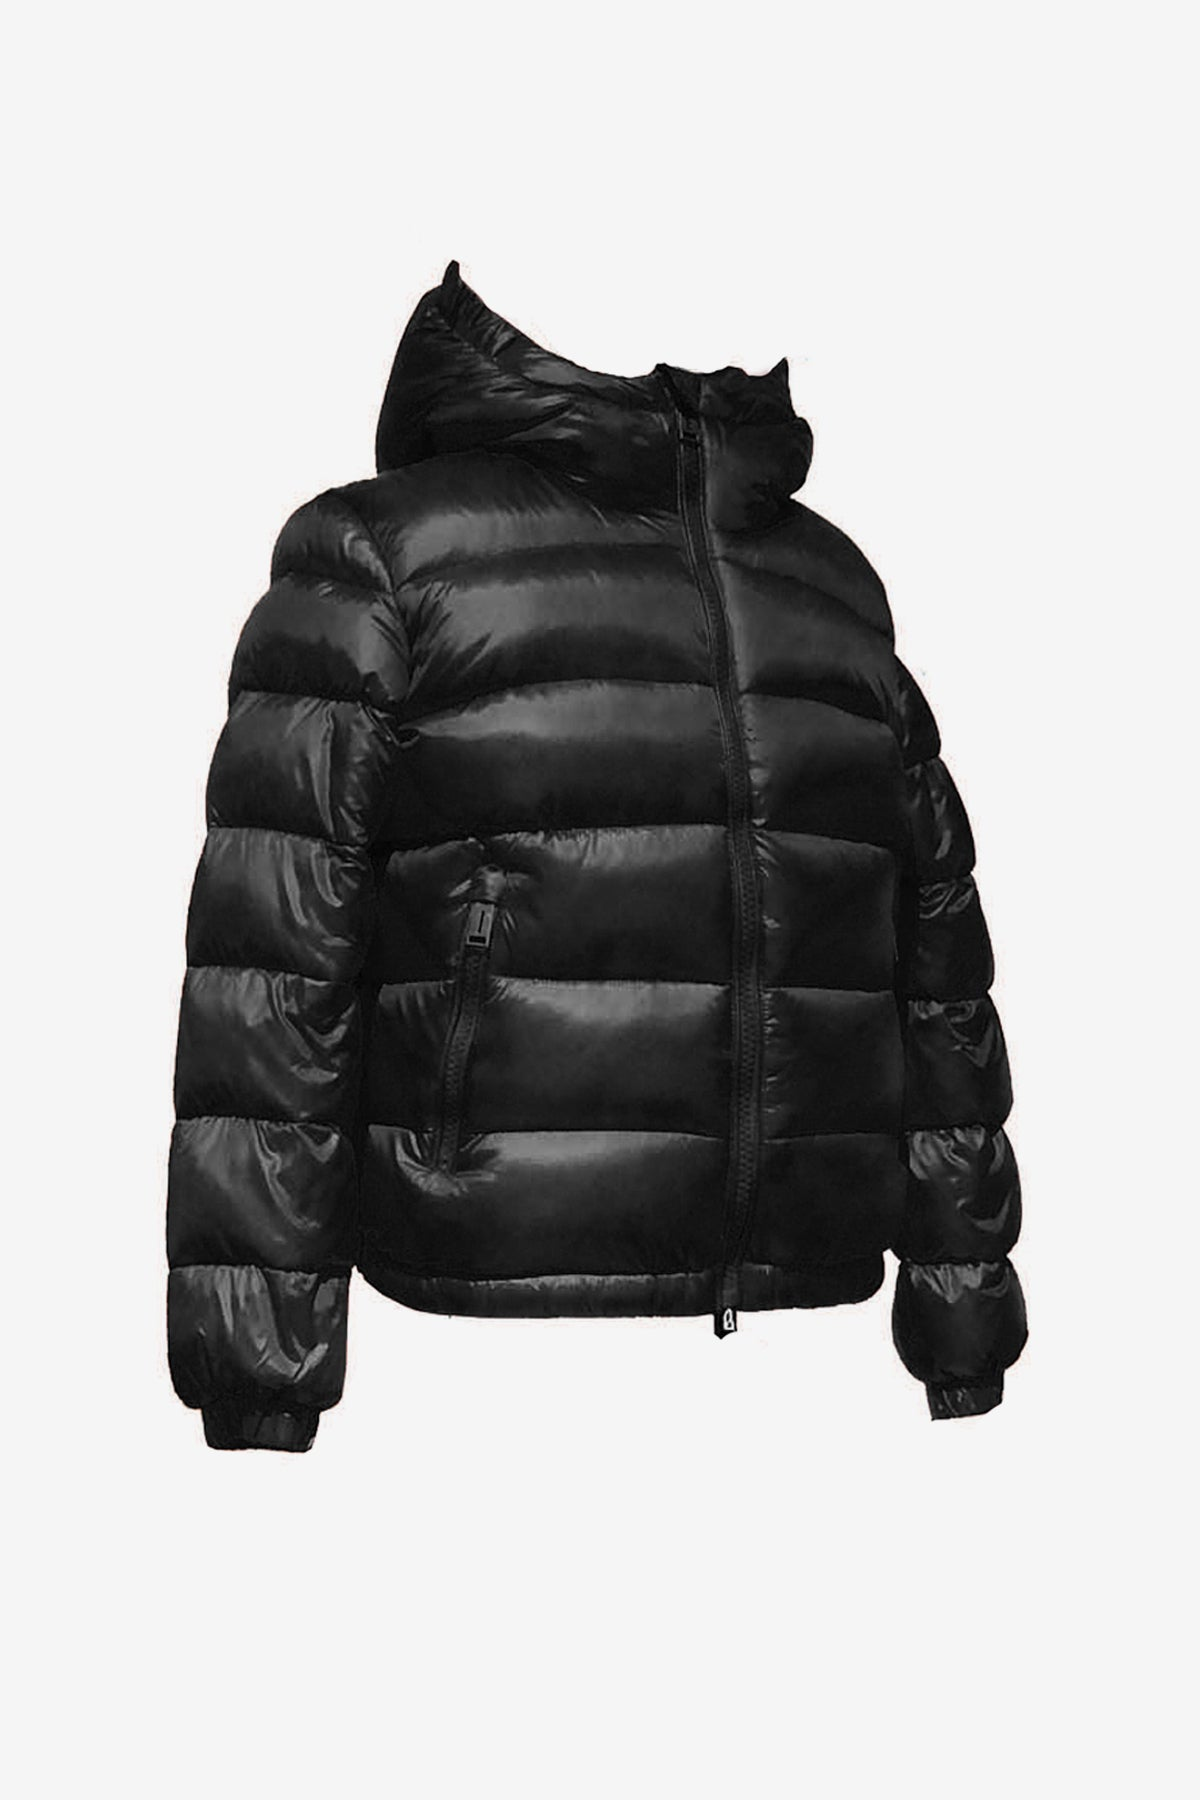 ADD Down Boys Down Jacket - Black (Size 7/8 left)